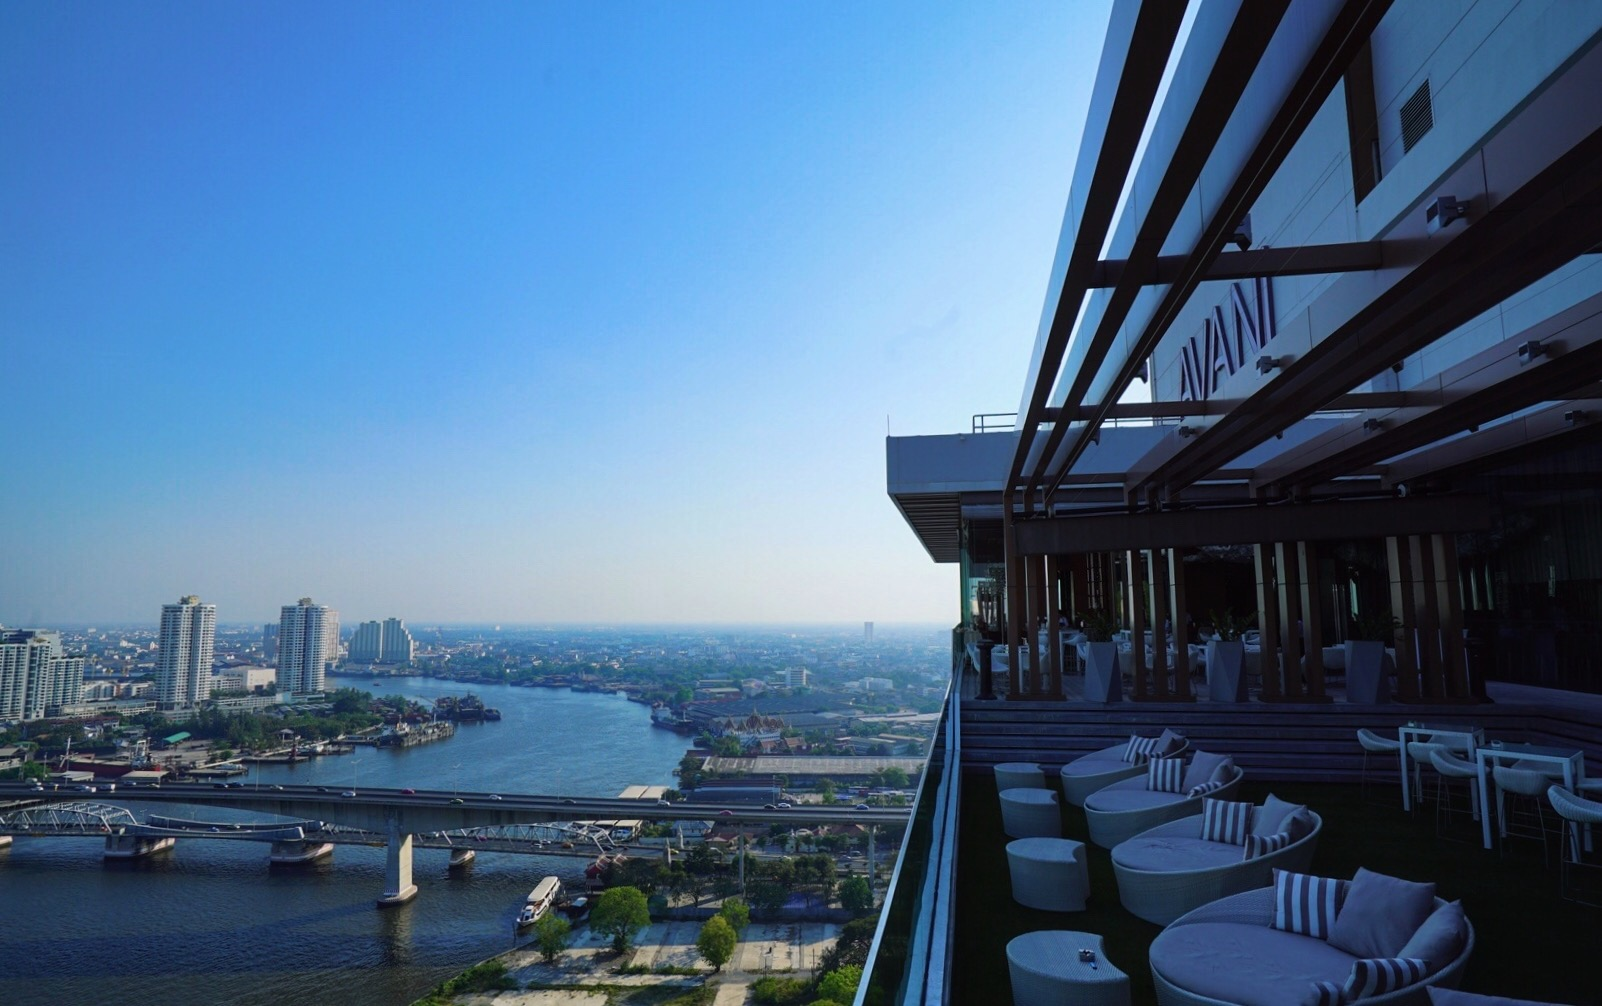 View from Avani Riverside rooftop